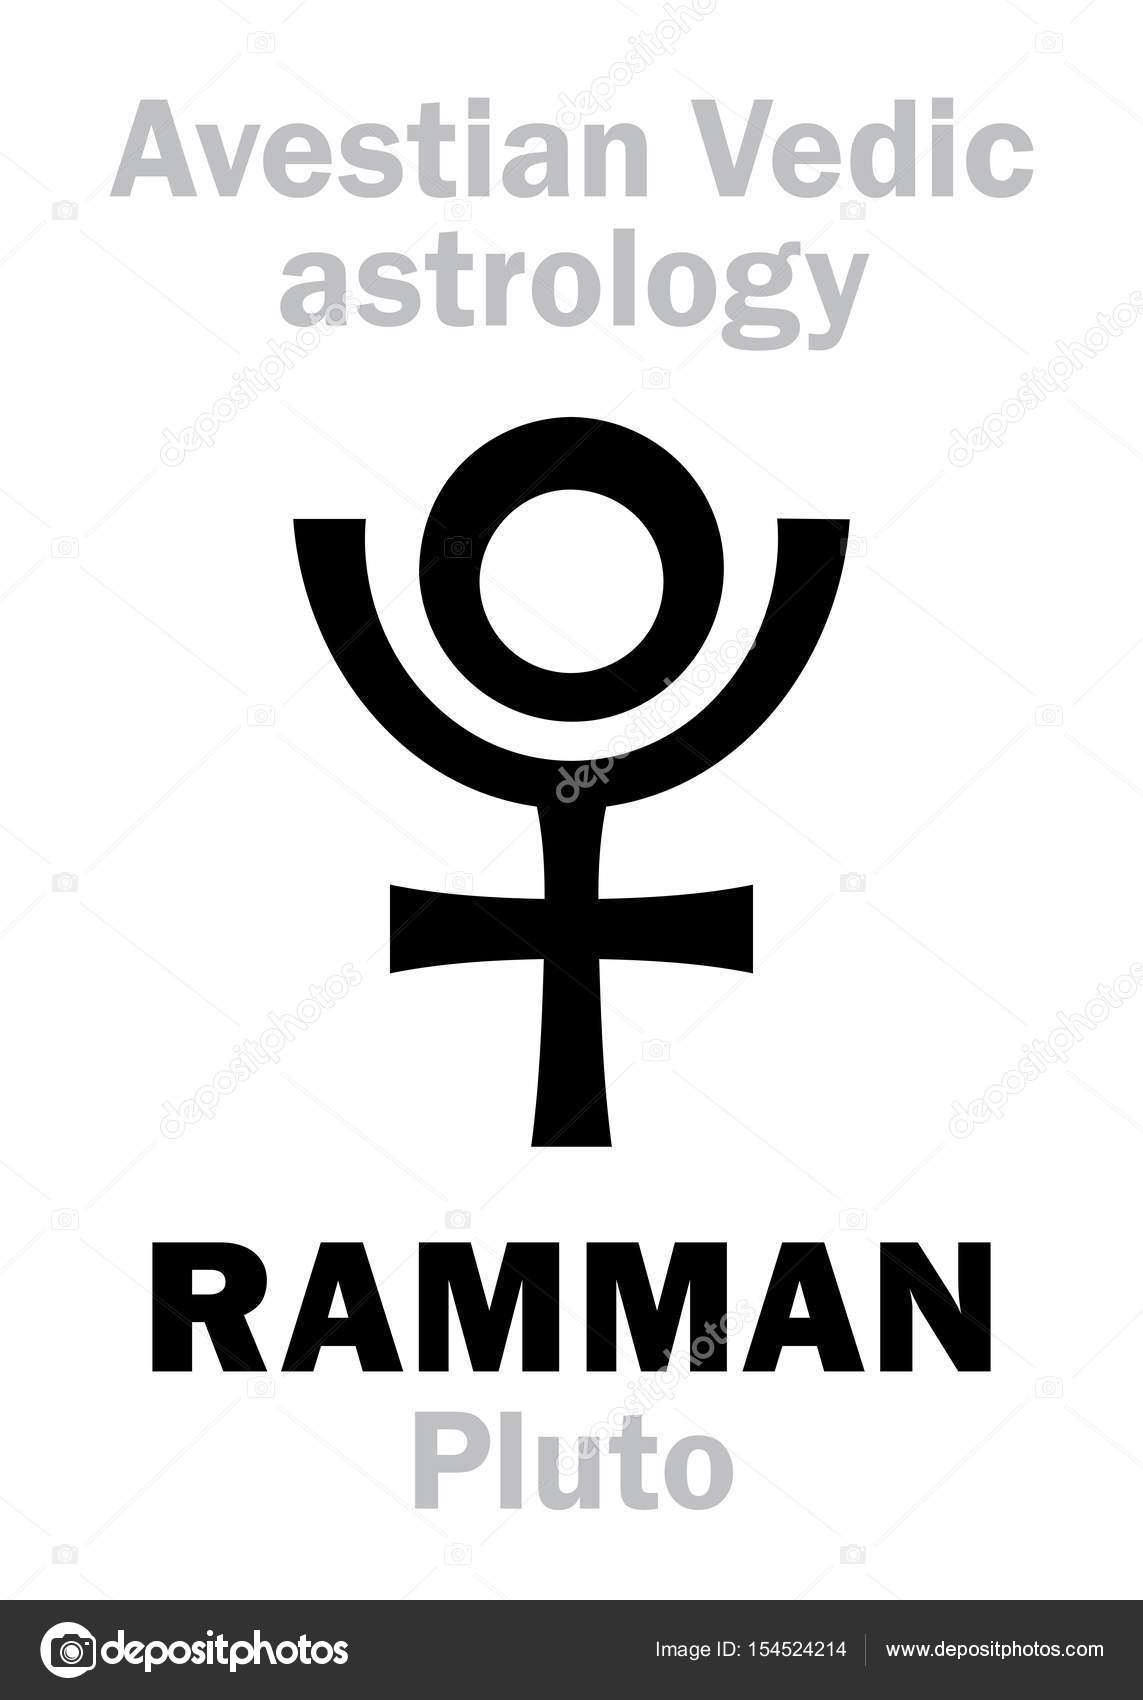 Astrology Planet Ramman Haddad Pluto Stockvector Photon